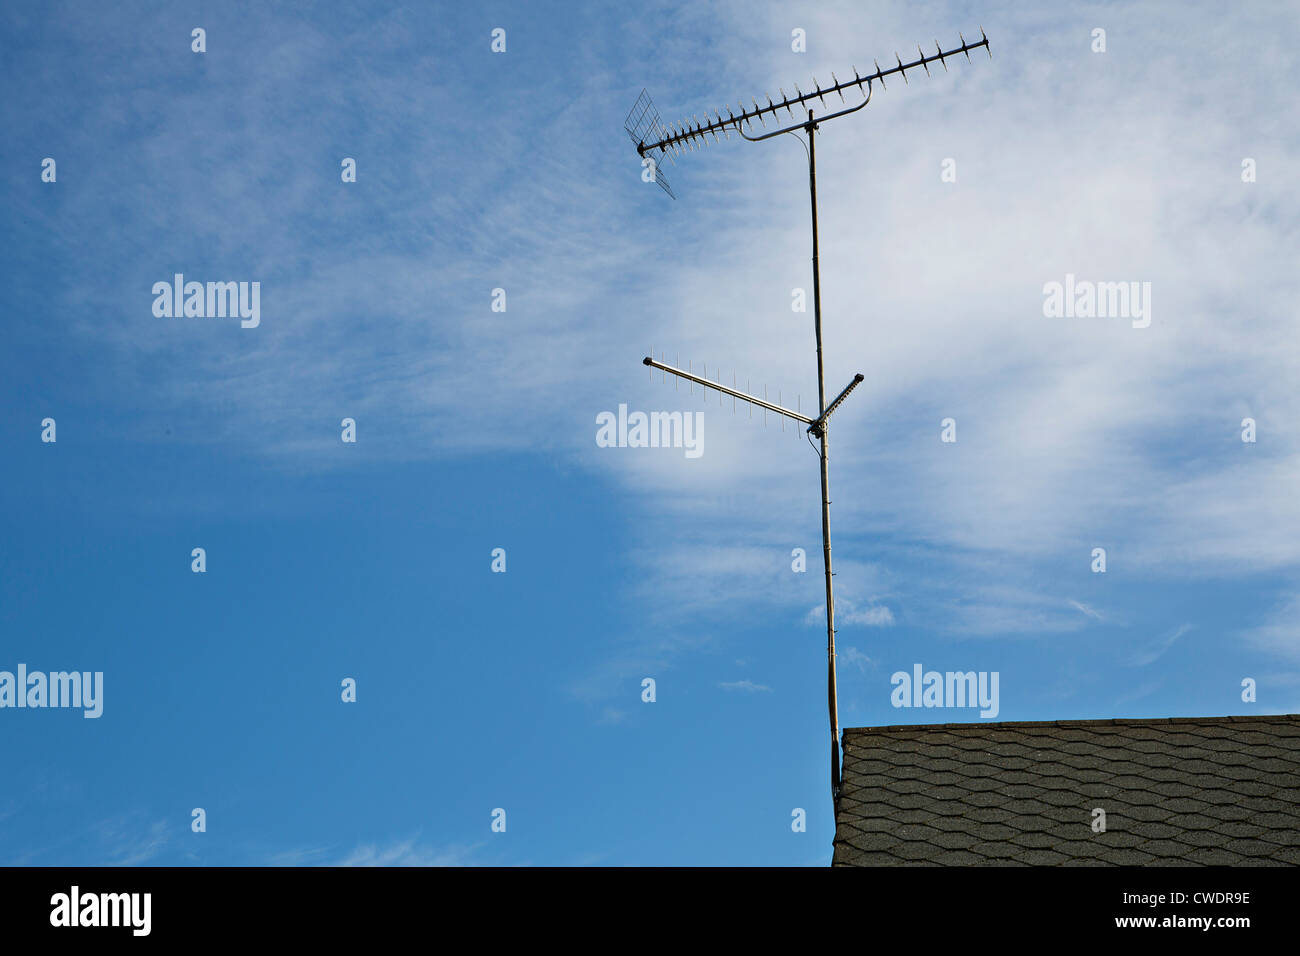 Antenna on the roof transmitting programs on tv - Stock Image